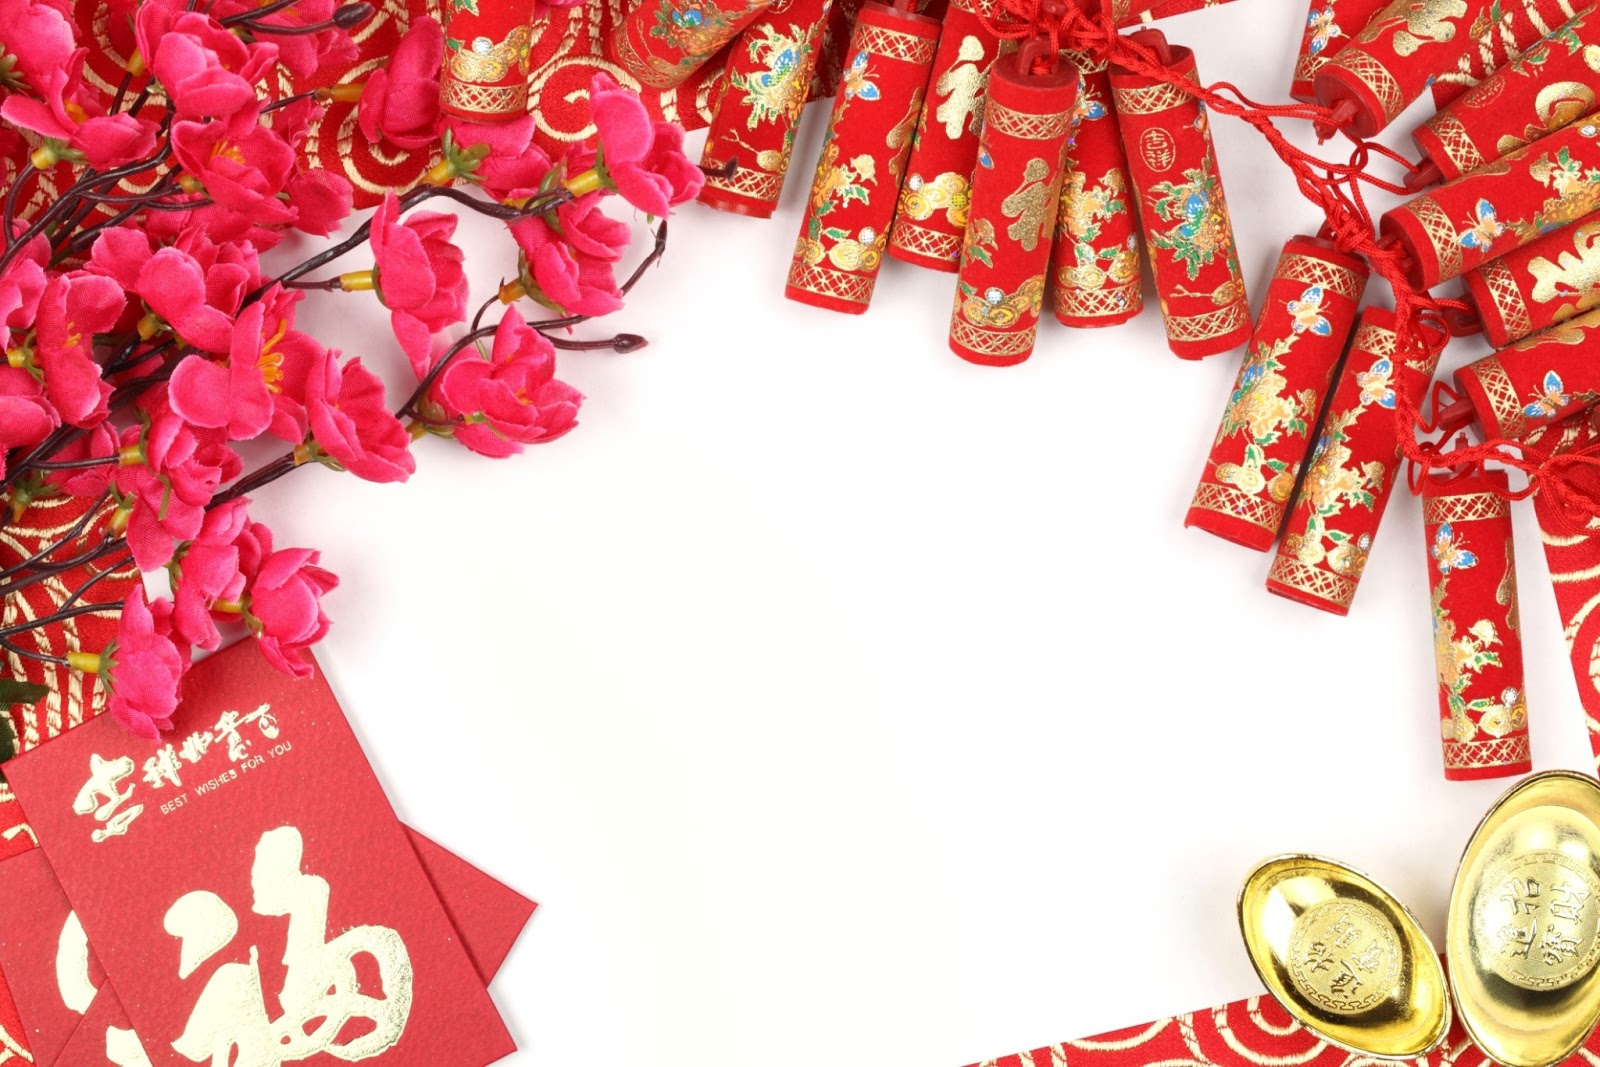 Free Download Lunar New Year Chinese New Year 2014 Windows 8